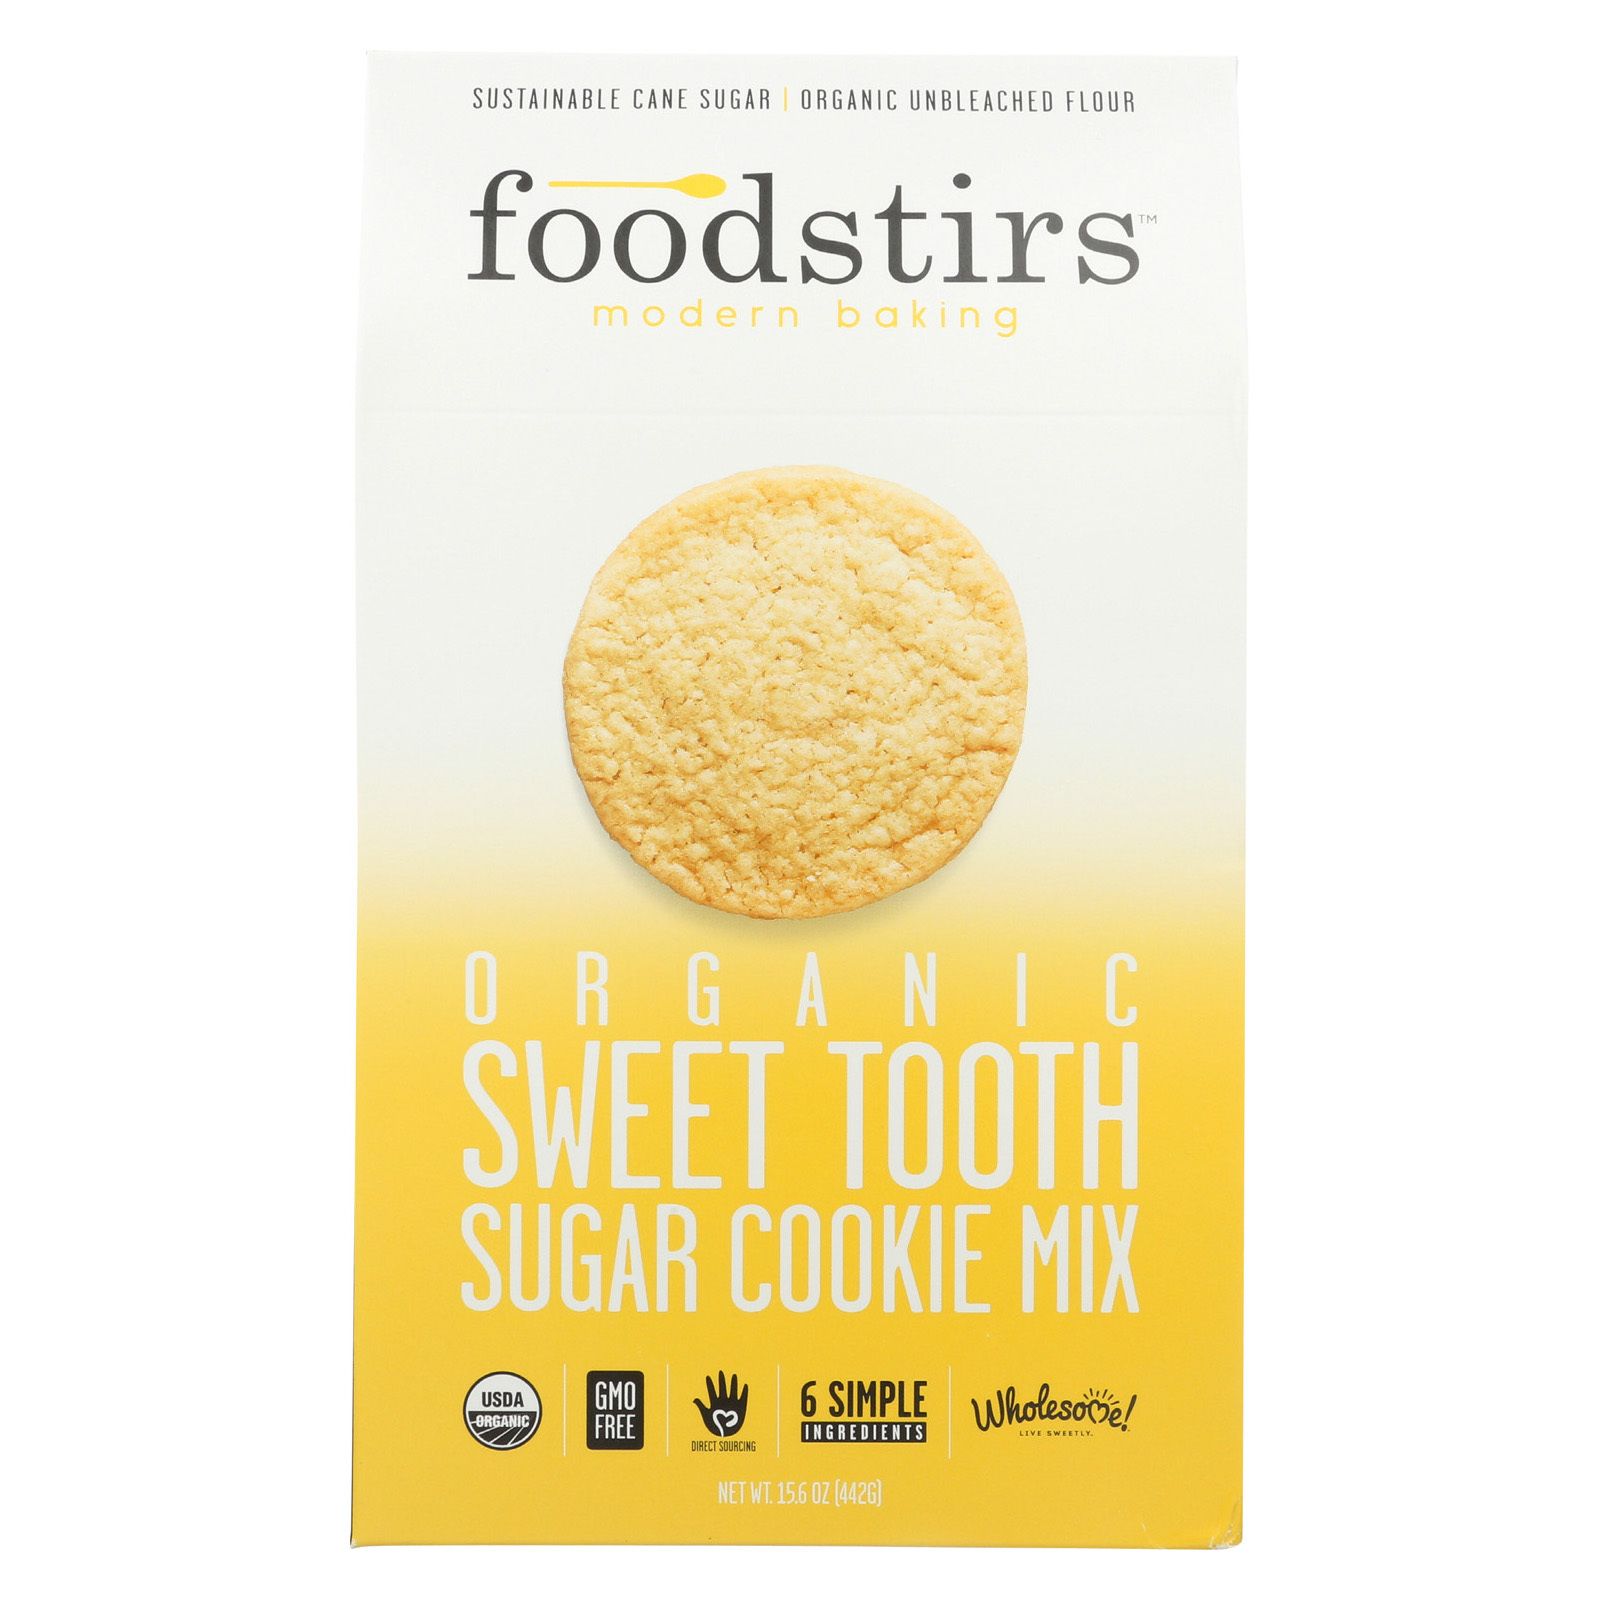 Foodstirs Organic Baking Mix - Sweet Tooth Sugar Cookie - Case of 6 - 15.6 oz